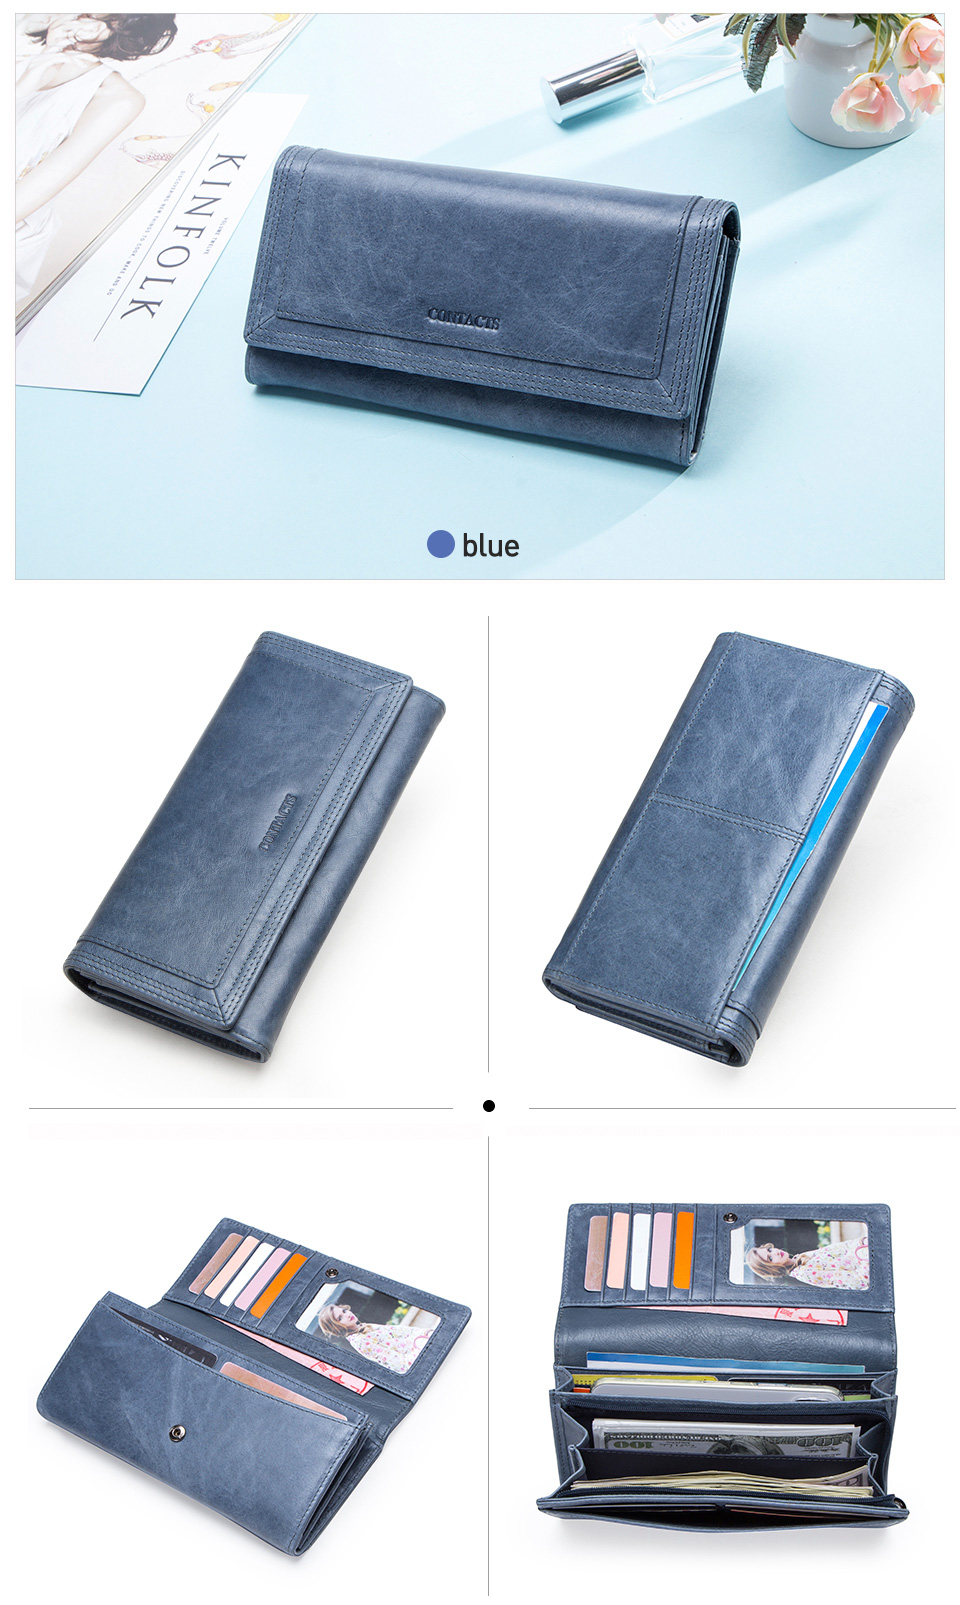 Clutch Wallets for Women Coin Purse Phone Pocket Genuine Leather Female Wallet Card Holder Money Bag gray 19*10*3.5cm 19